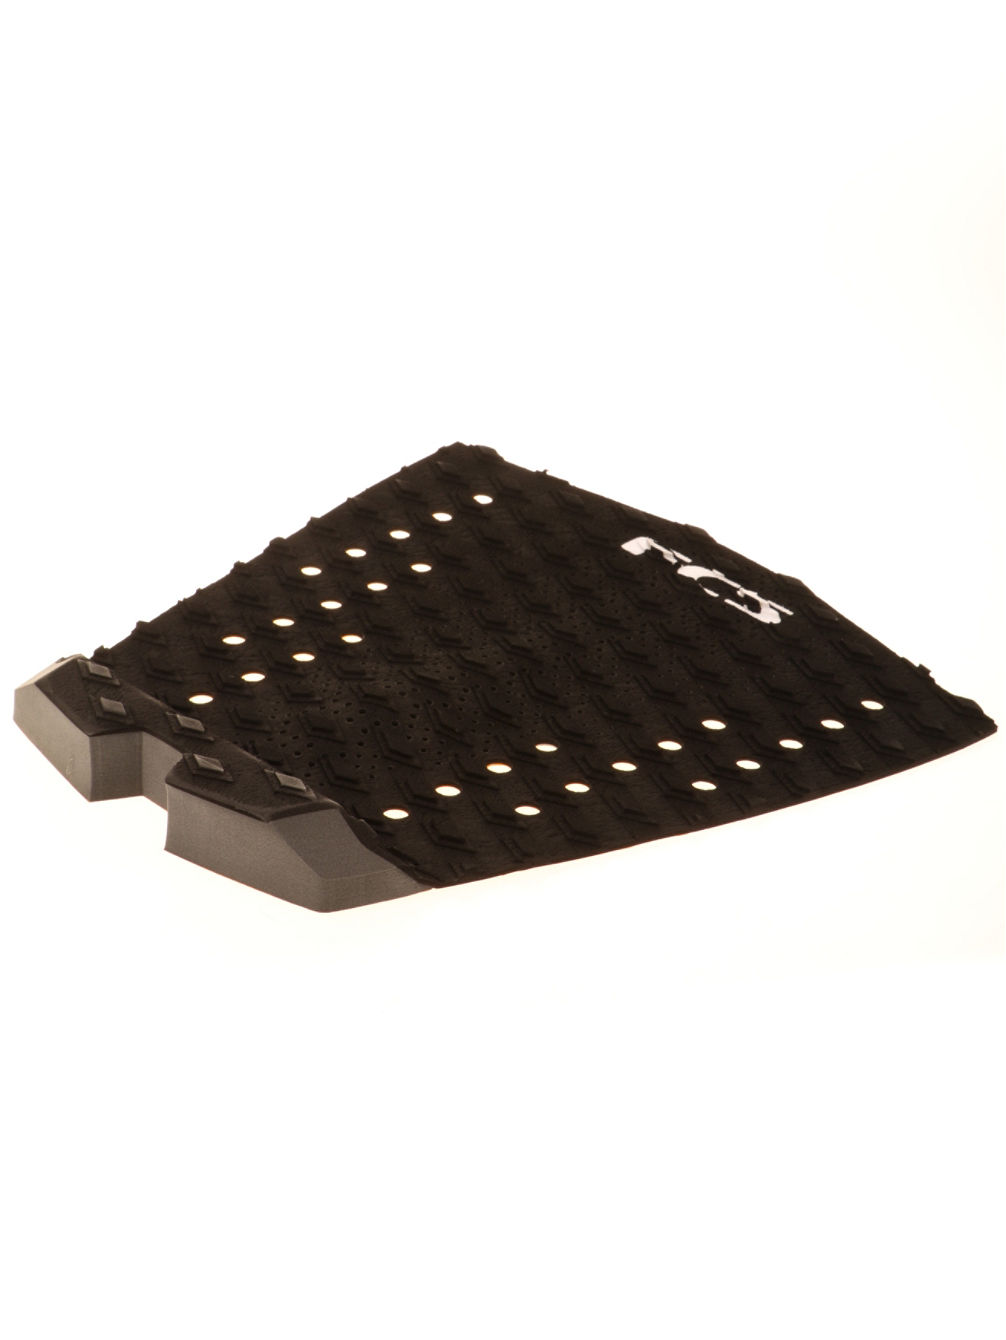 T-1 Black/Charcoal Traction Pad